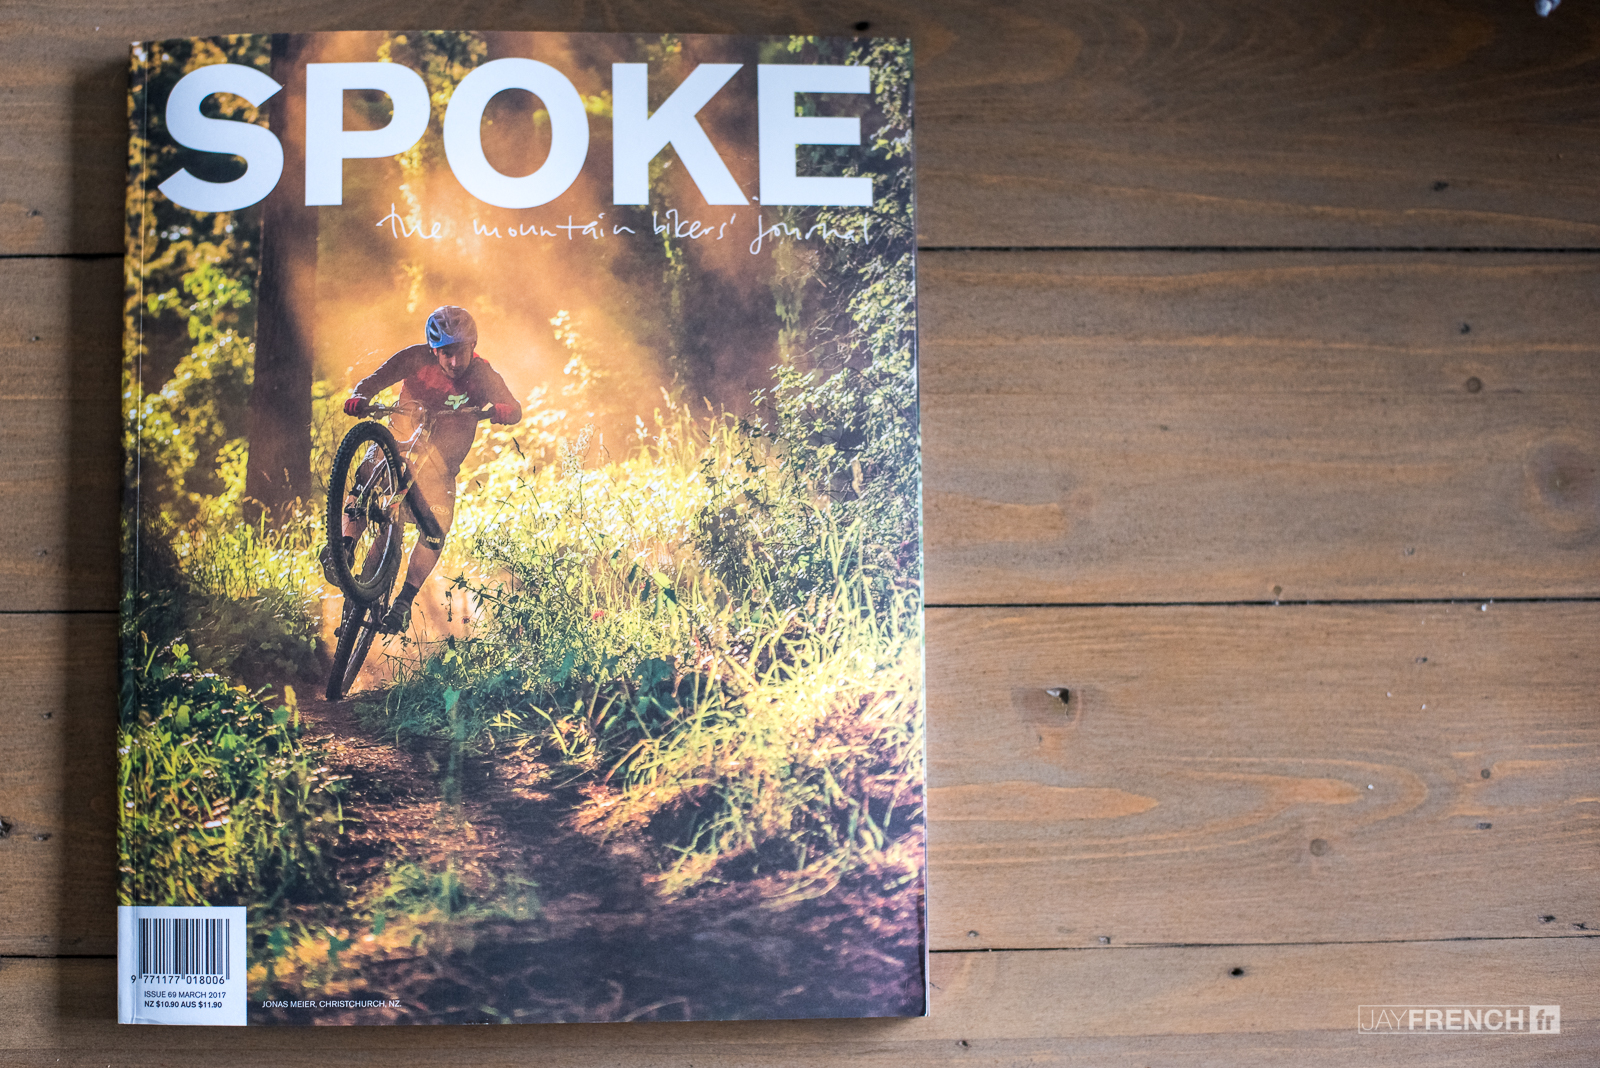 SPOKE MAGAZINE - Gallery images and a four page one on one interview with Sam Blenkinsop.